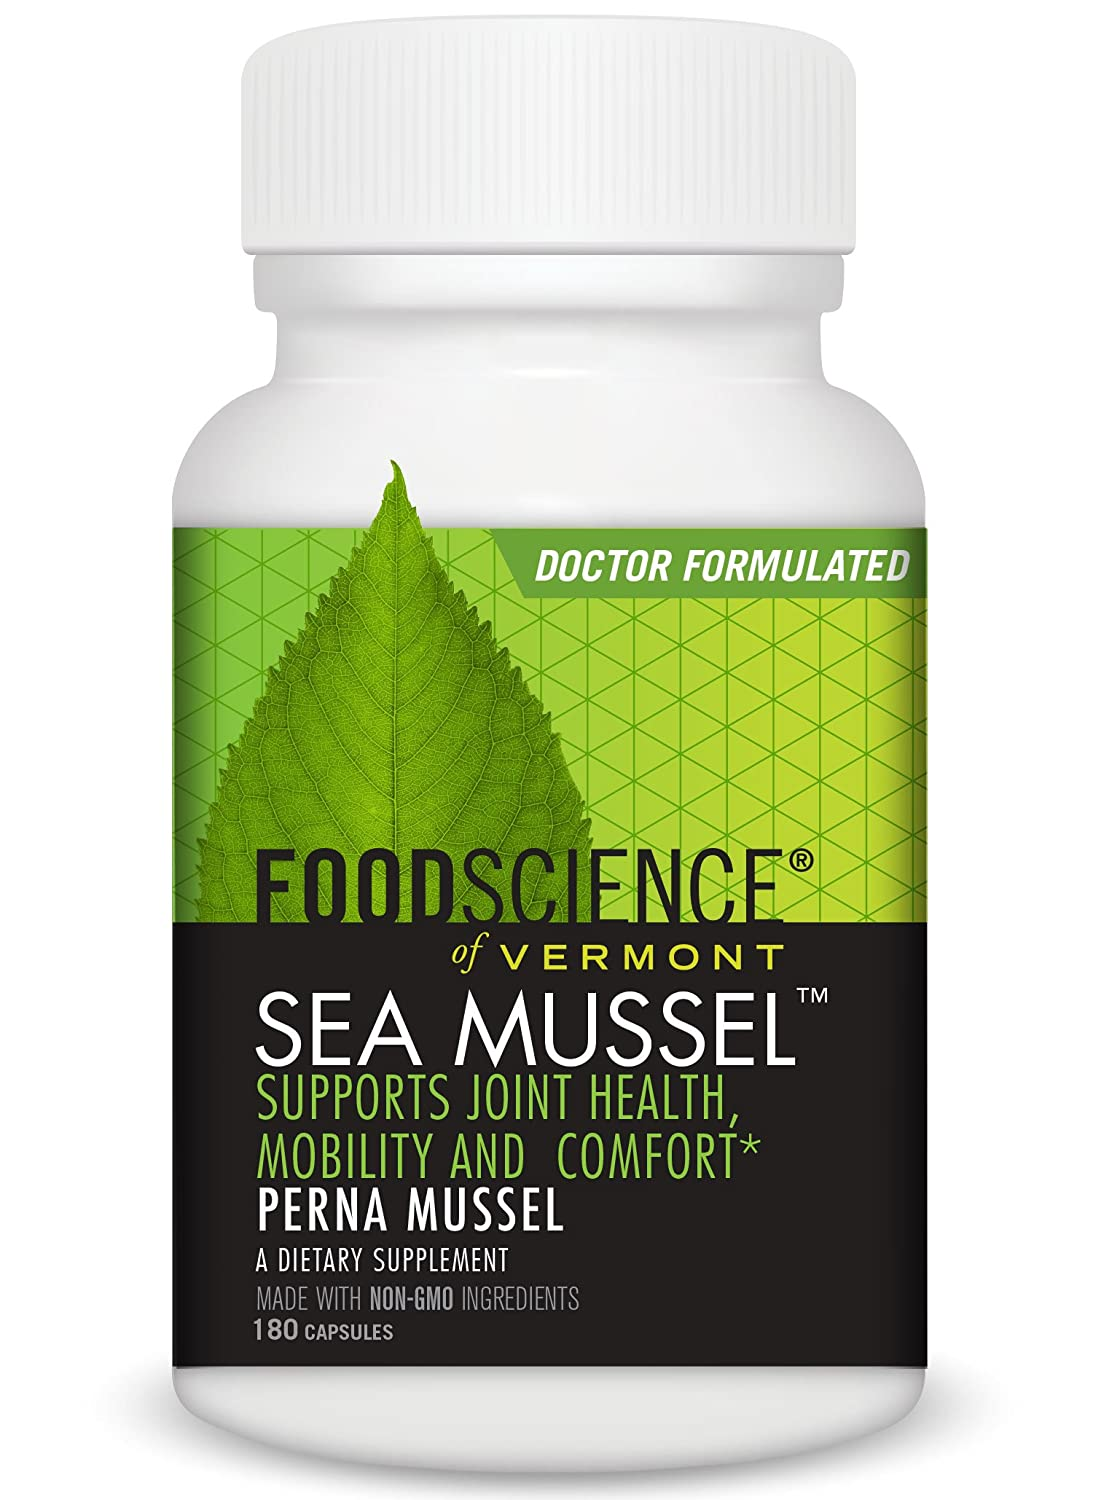 FoodScience of Vermont Sea Mussel, Green-Lipped Mussel Joint Supplement Capsules, 180 Count